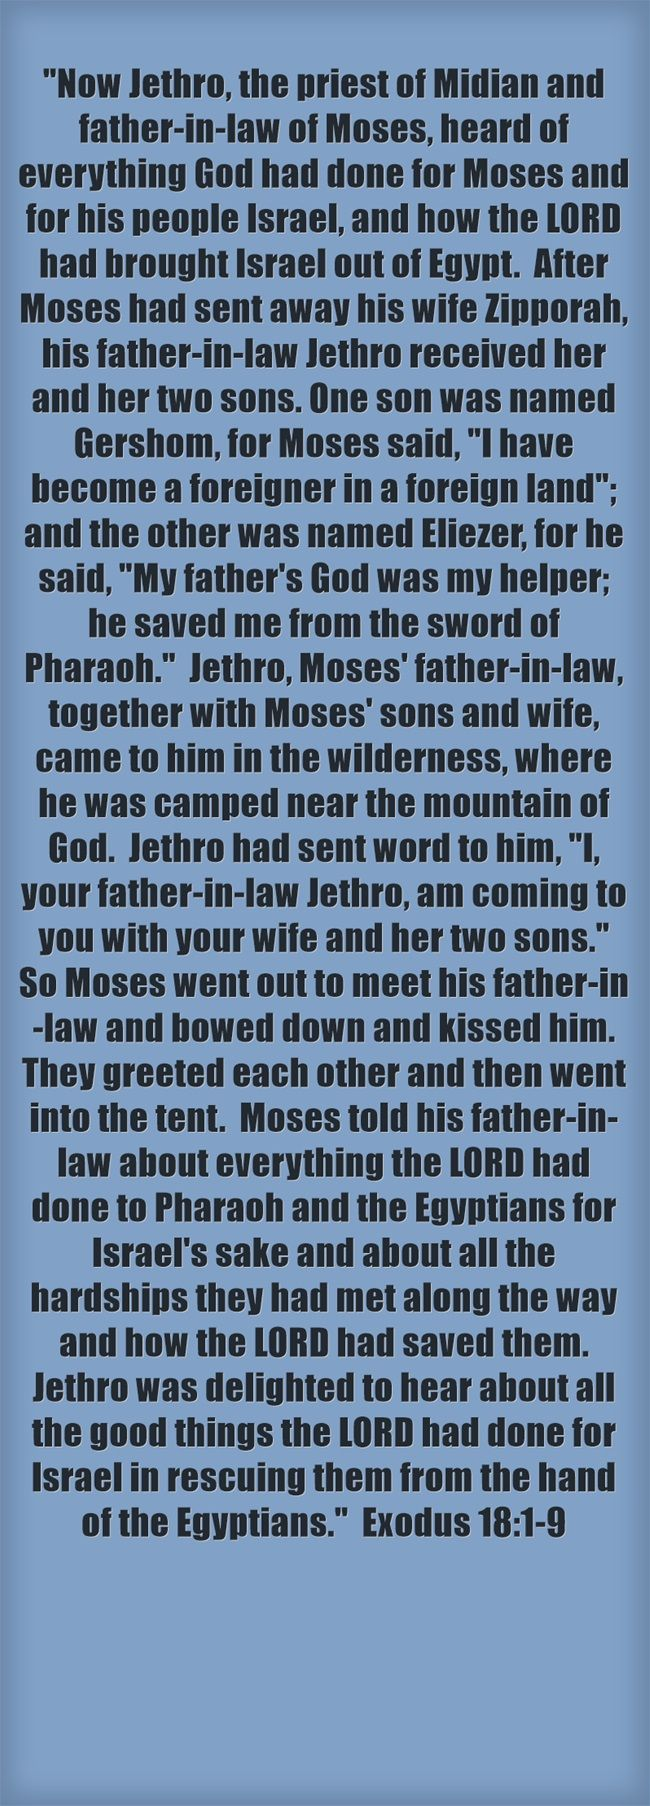 Now Jethro, the priest of Midian and father-in-law of Moses, heard of everything God had done for Moses and for his people Israel, and how the LORD had brought Israel out of Egypt. After Moses had sent away his wife Zipporah, his father-in-law Jethro received her and her two sons. One son was named Gershom, for Moses said, I have become a foreigner in a foreign land; and the other was named Eliezer, for he said, My father's God was my helper; he saved me from the sword...